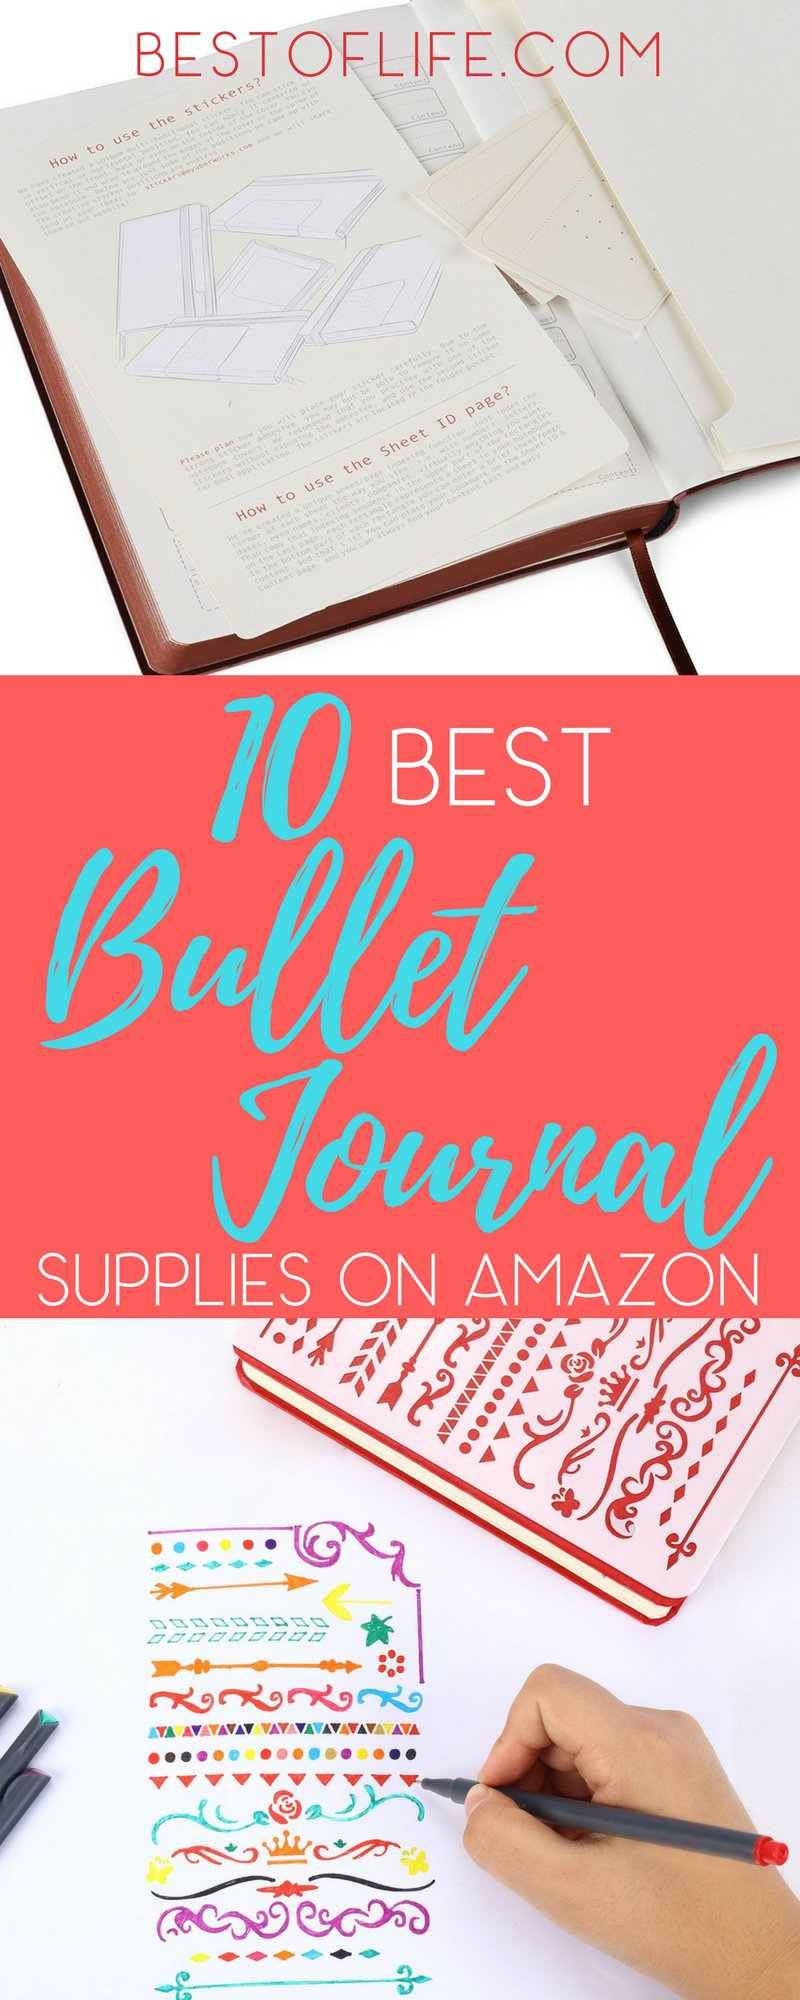 Getting bullet journal supplies on Amazon is a great way to get started with a bullet journal and improve how you organize your life. Bullet Journal Tips | How to Start a Bullet Journal | Bullet Journal Supplies | Bullet Journal Pens | Bullet Journal Stencils | Washi Tape